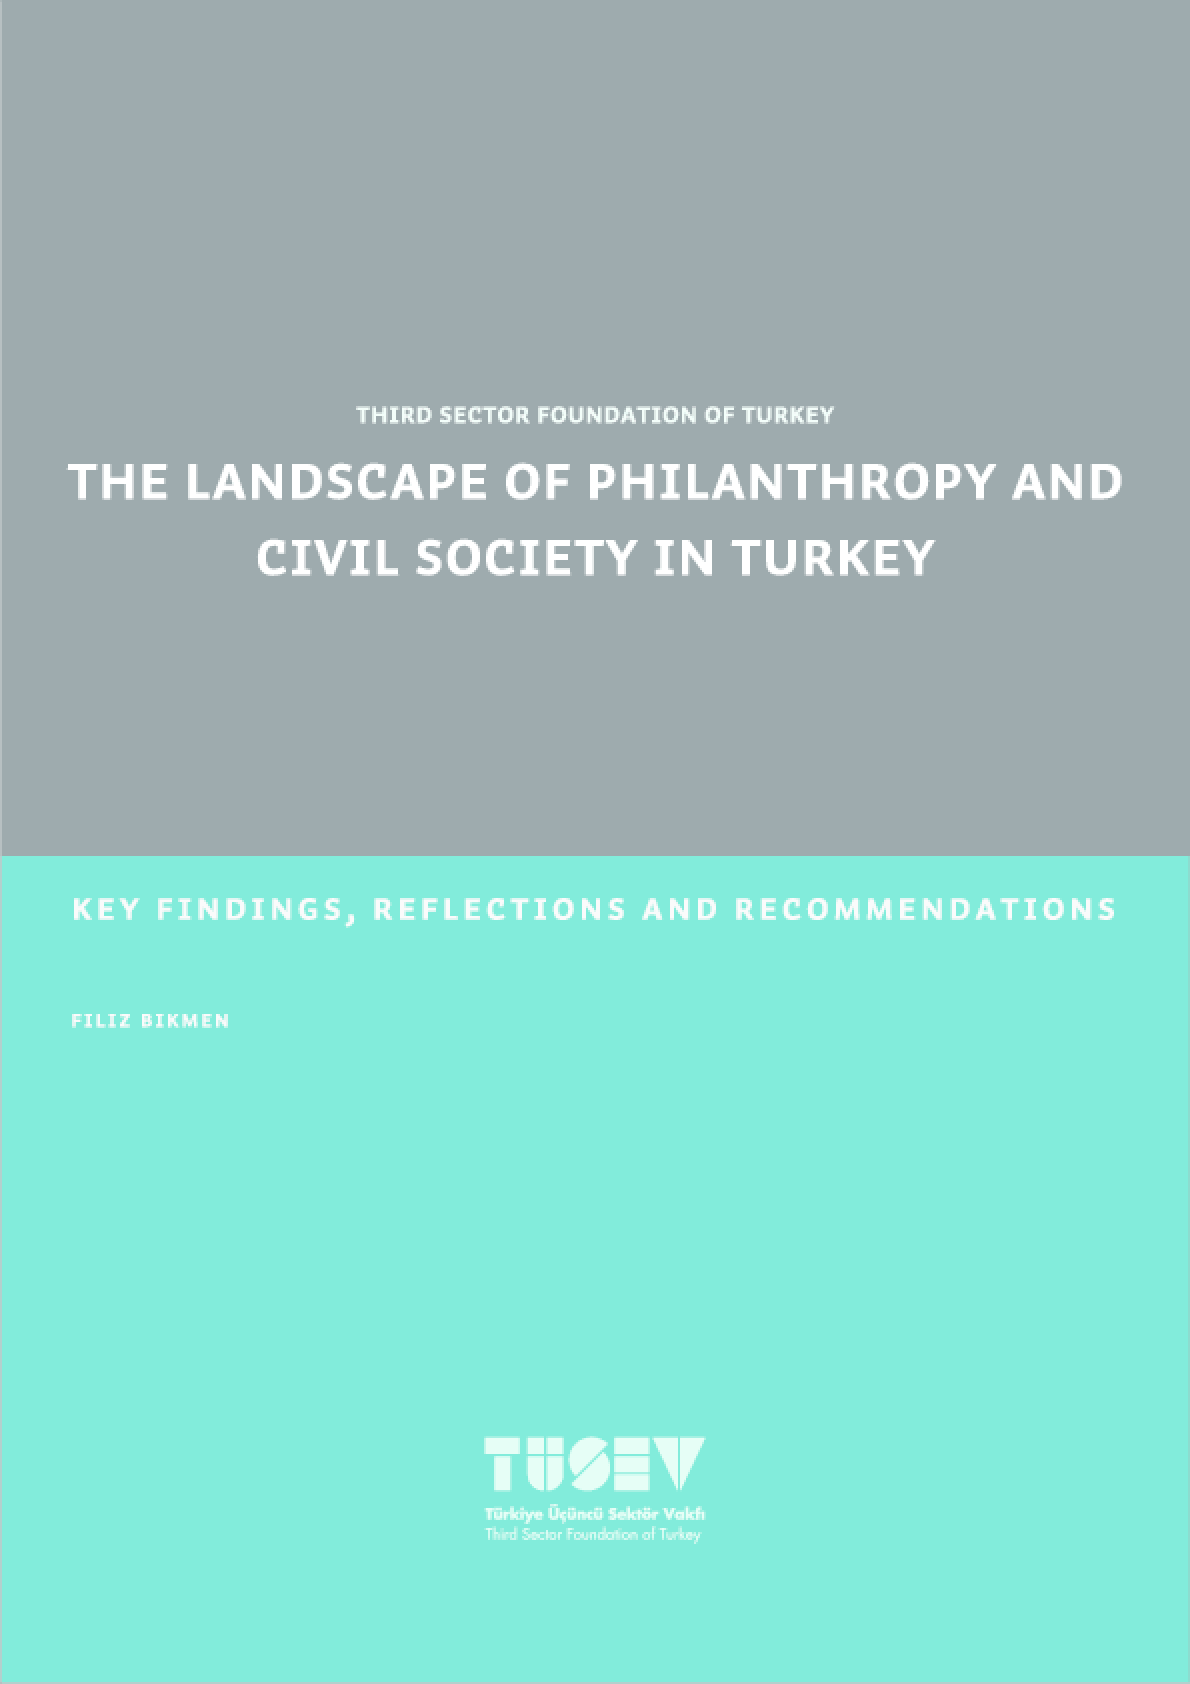 The Landscape of Philanthropy and Civil Society In Turkey